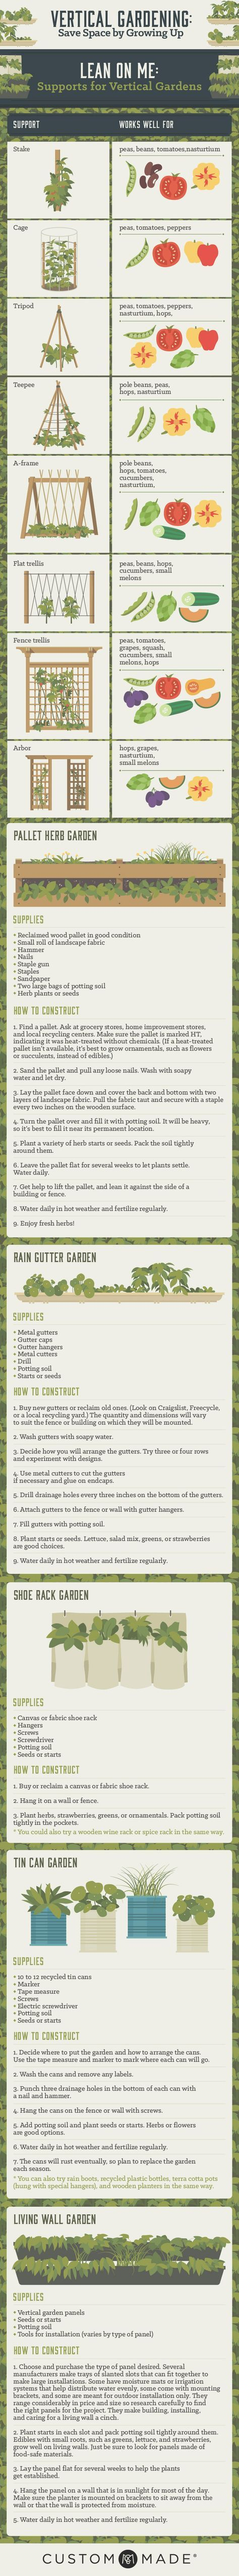 Vertical Gardening What To Plant With Best Methods Of Support Simple Diagram Format Vertical Vegetable Gardens Vertical Garden Plants